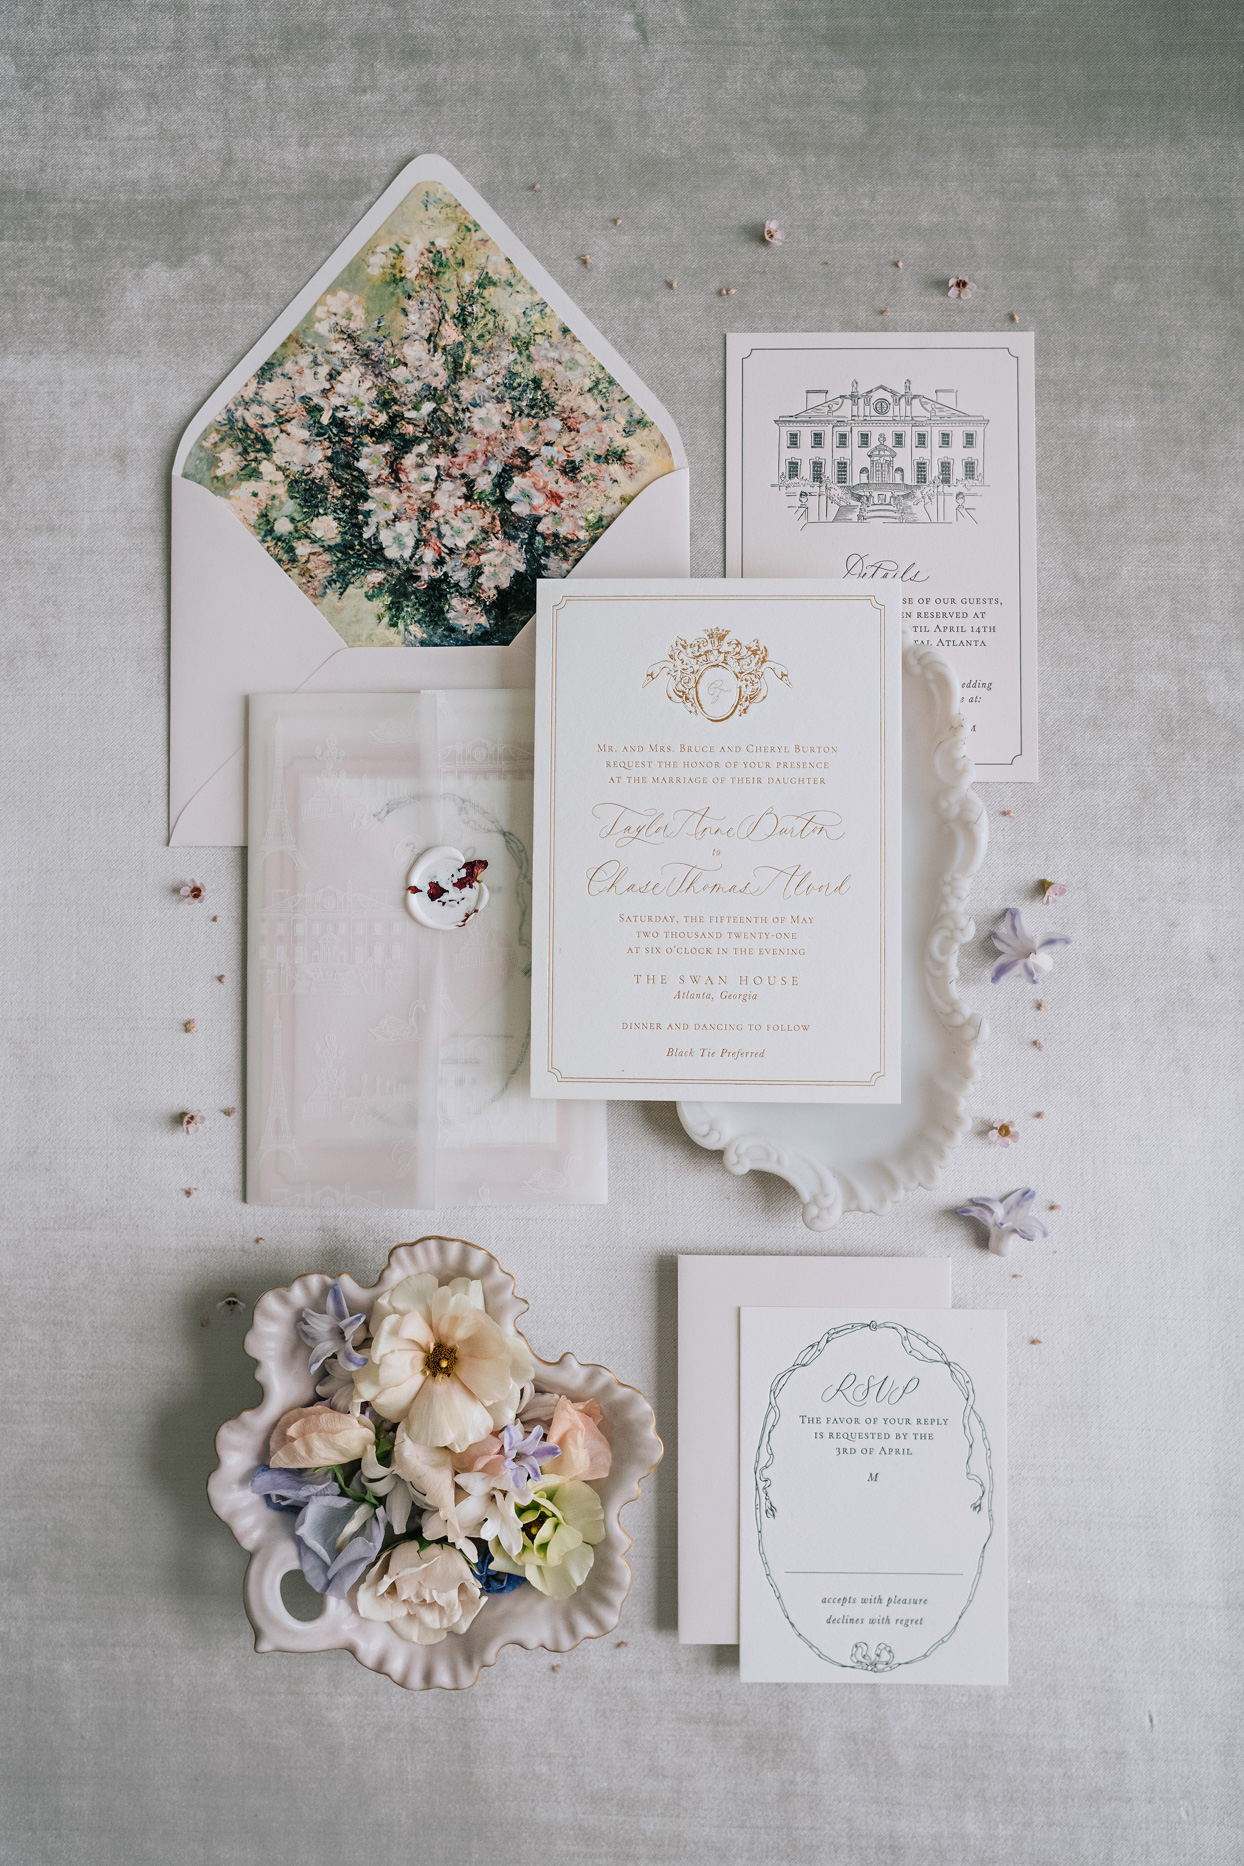 custom wedding invitation stationery suite with a vellum wrap and wax seal